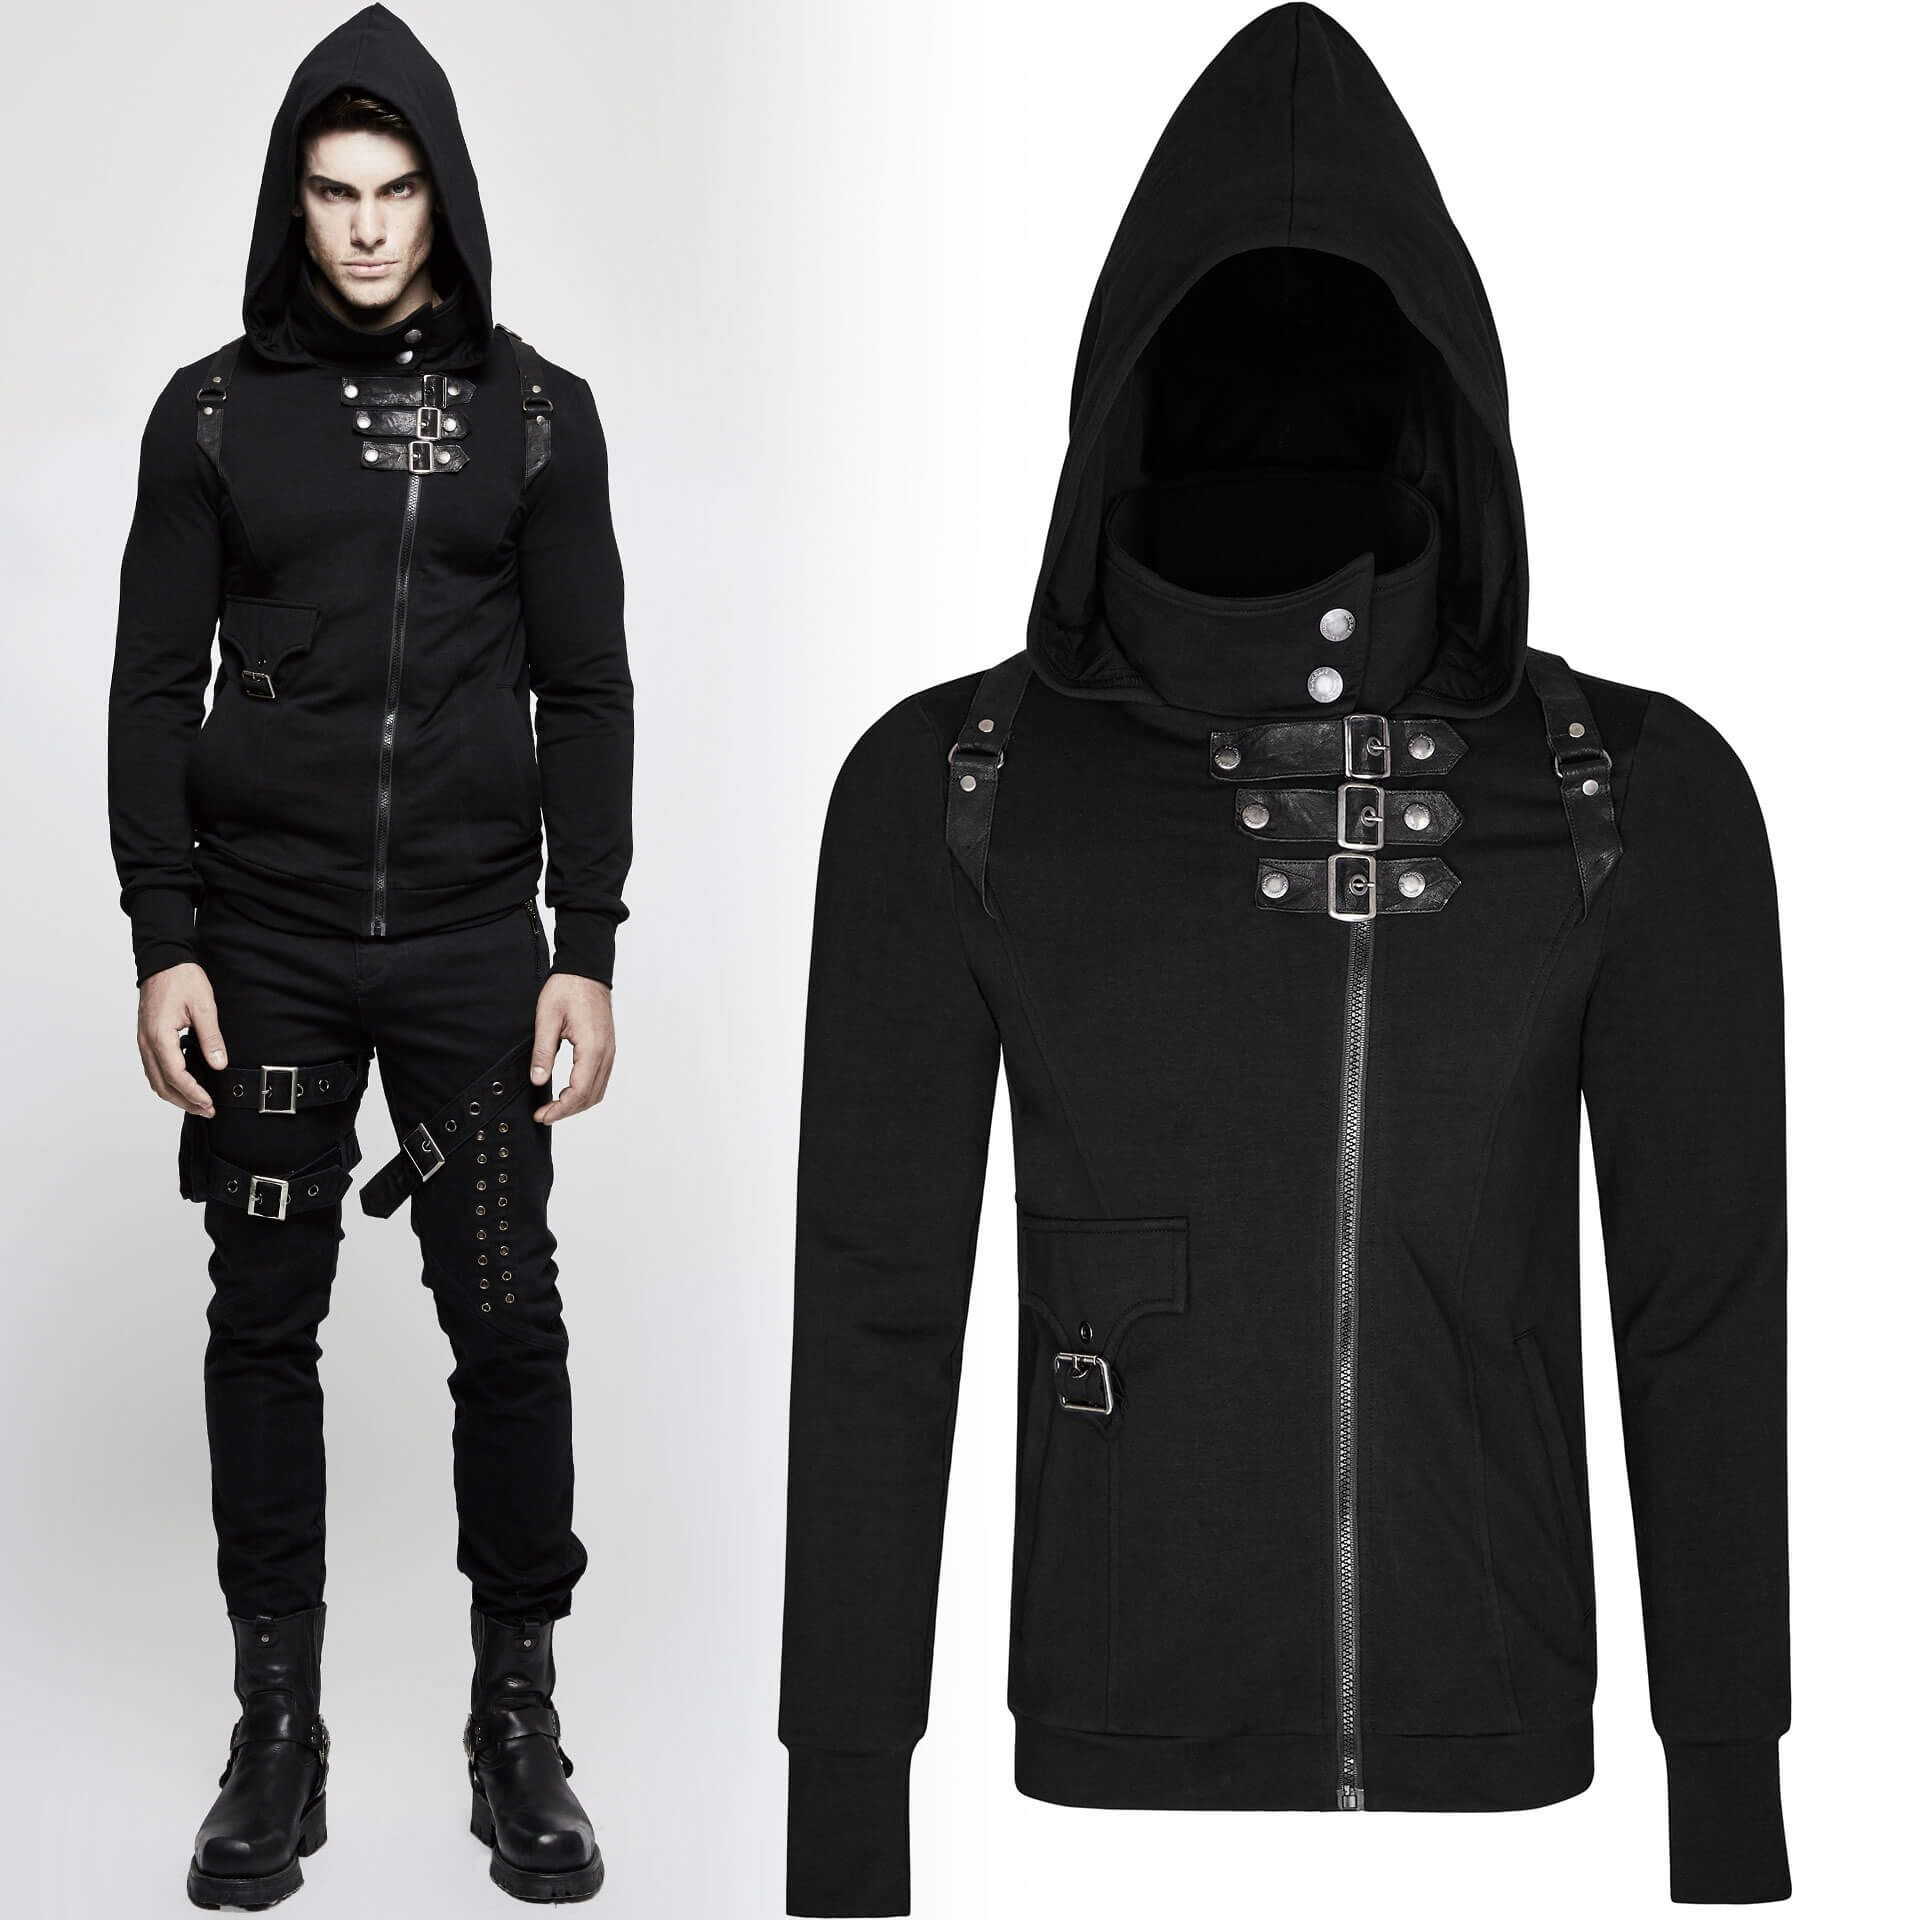 men's Resident Evil Hoodie by PUNK RAVE brand, code: Y-789/Male